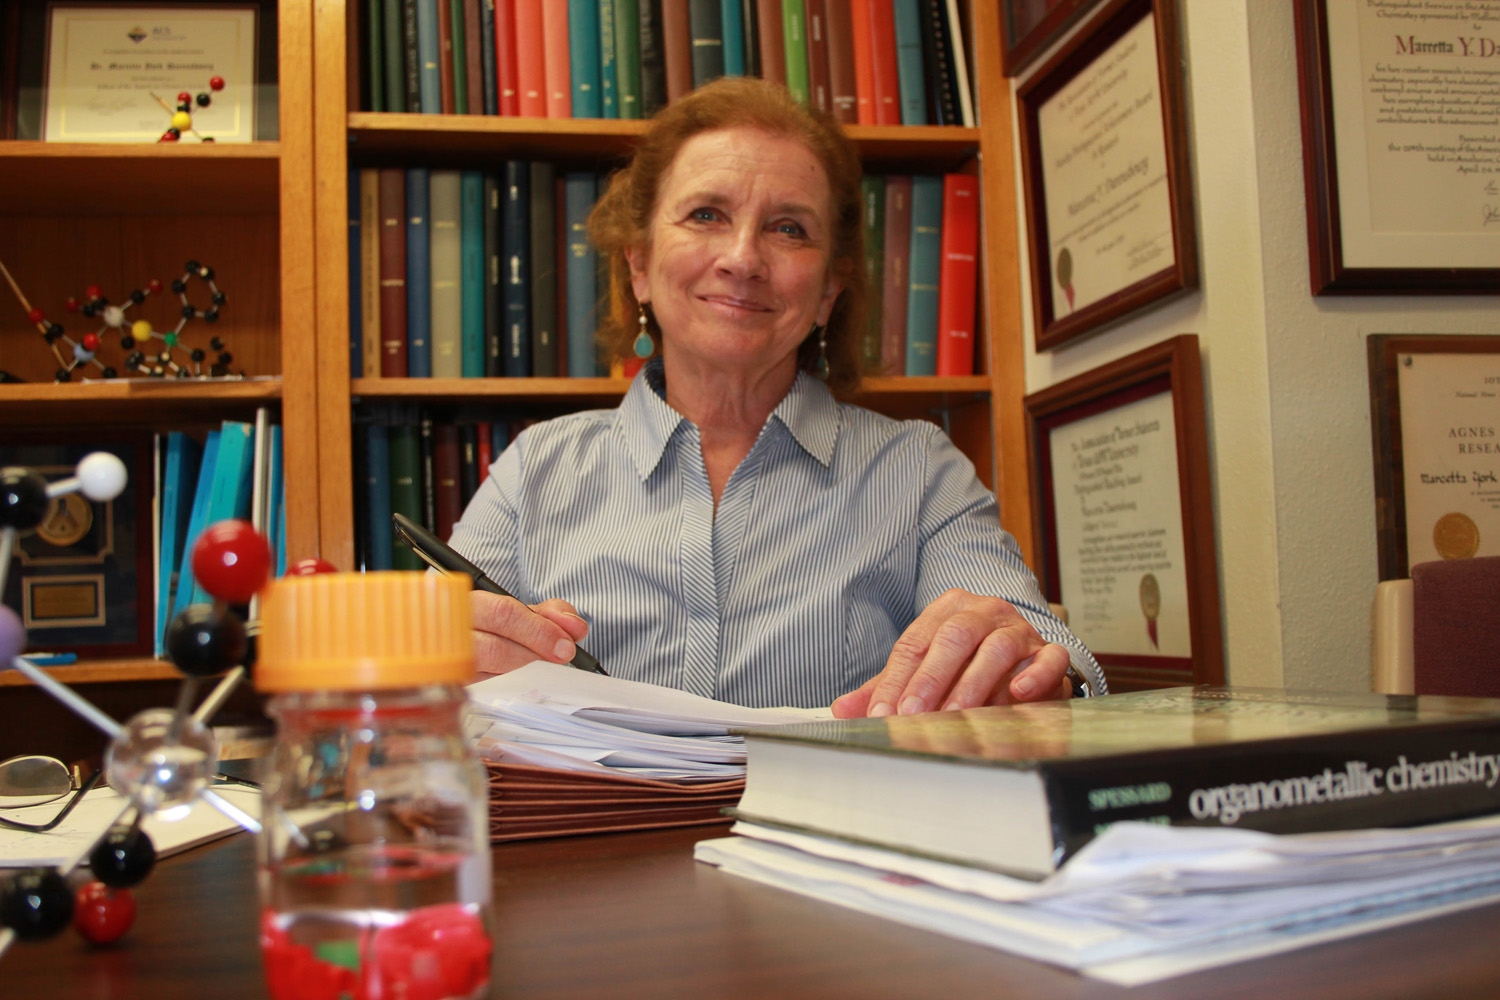 Dr. Marcetta Darensbourg smiles at her desk surrounded by papers, books and chemistry models